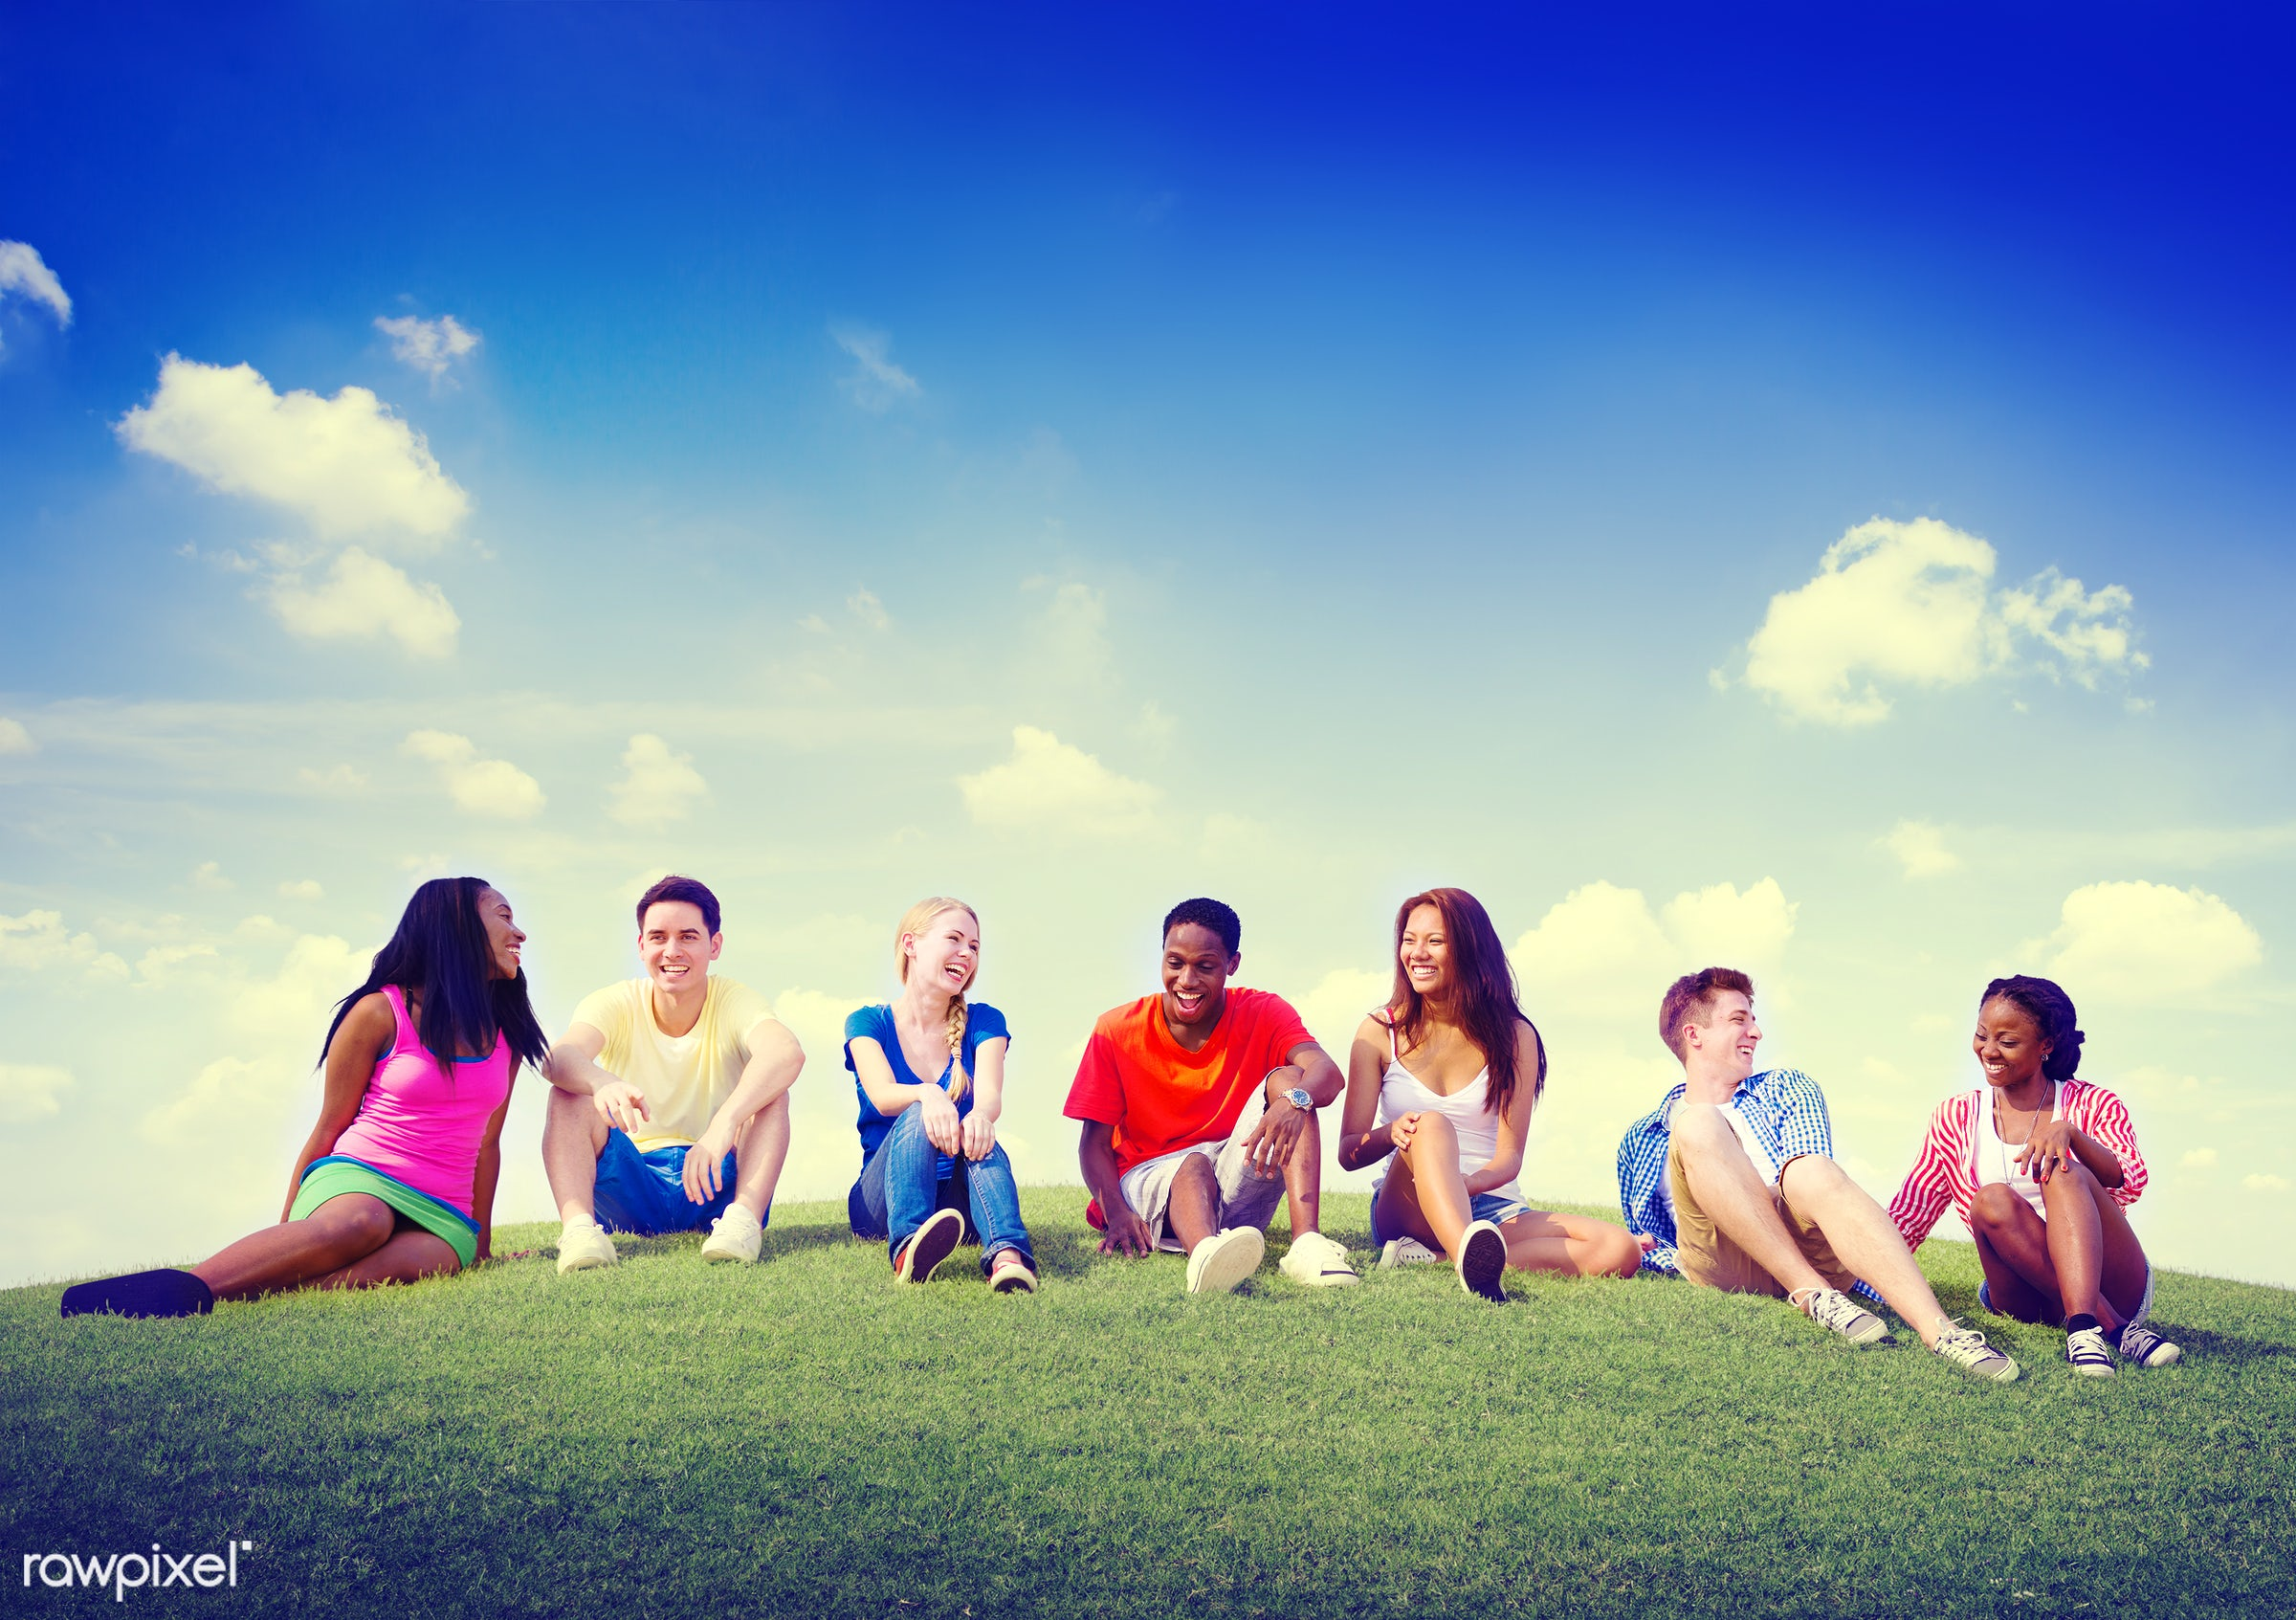 african descent, asian ethnicity, blue sky, casual, cheerful, colorful, community, concept, cooperation, day, diverse,...